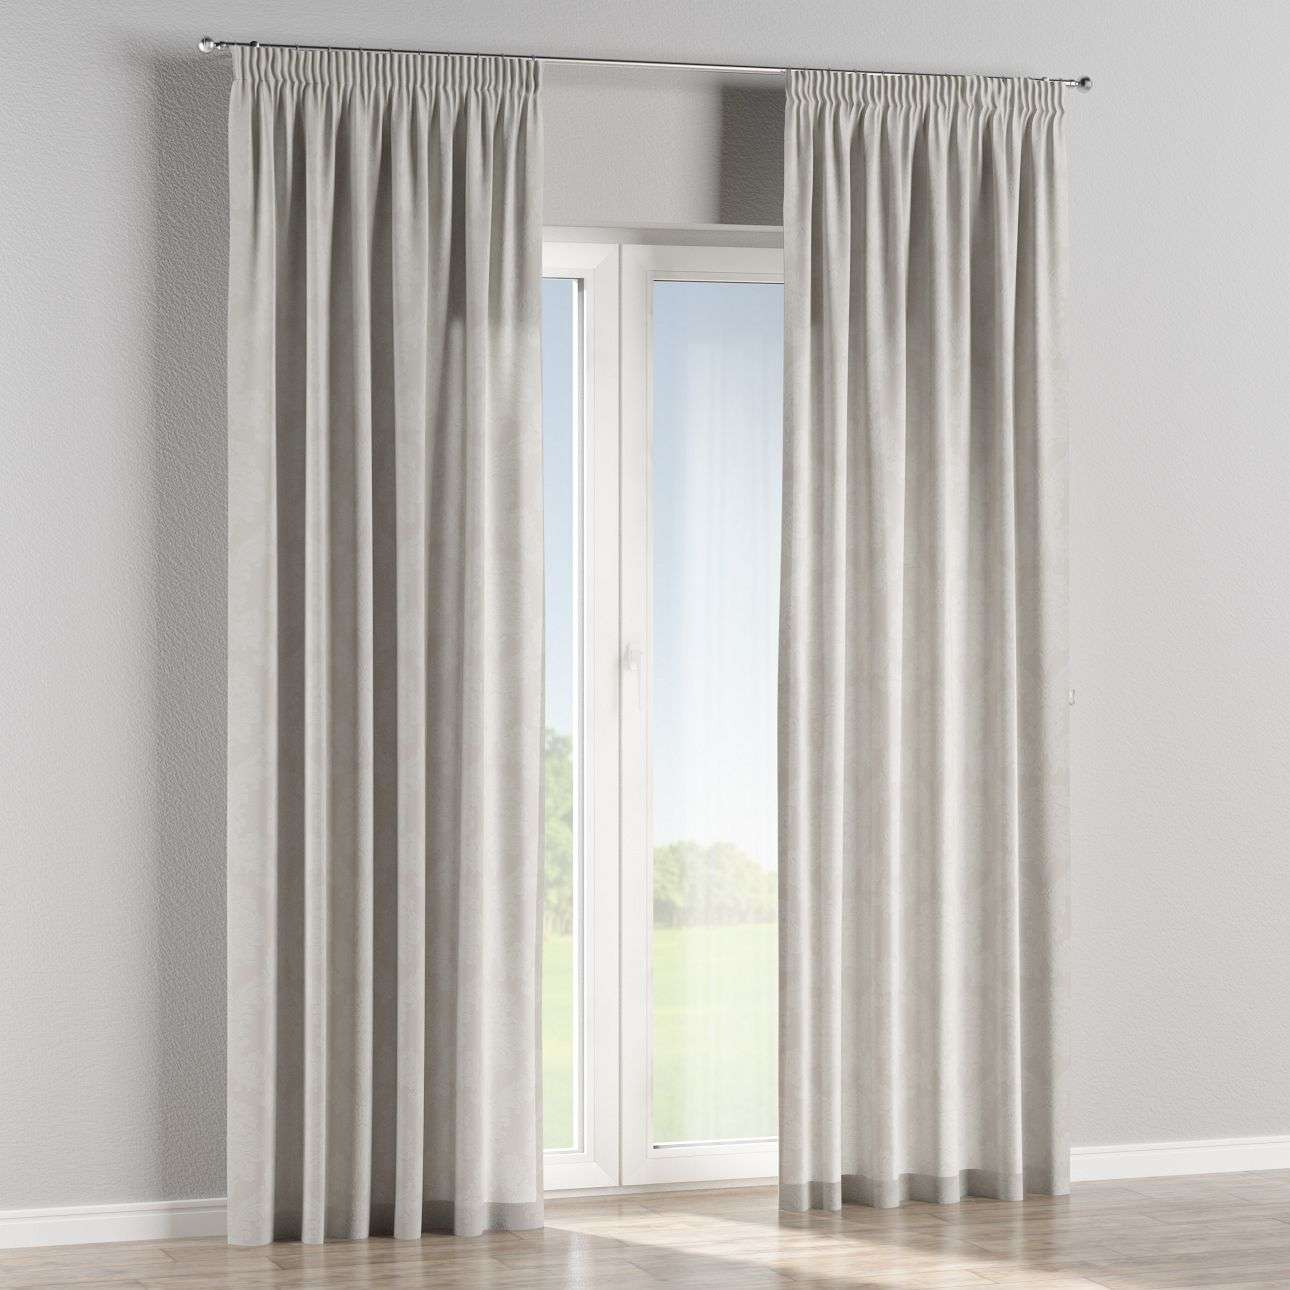 Pencil pleat curtains in collection Damasco, fabric: 613-81